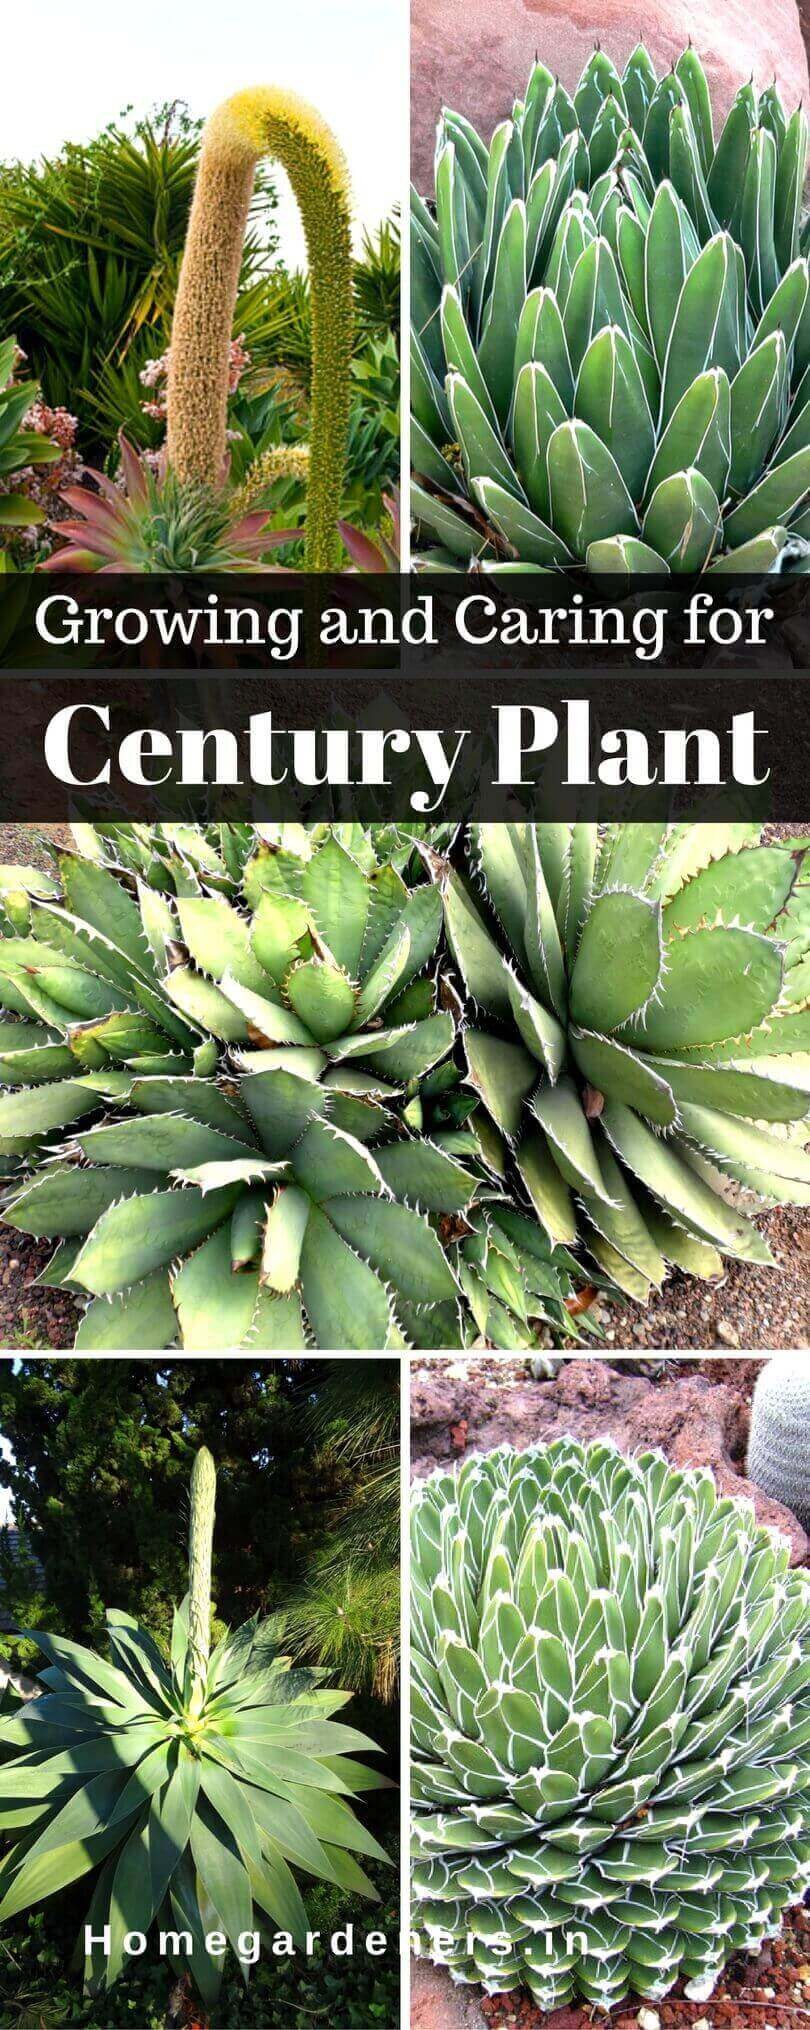 Agave Americana - Growing and Caring for Century Plant